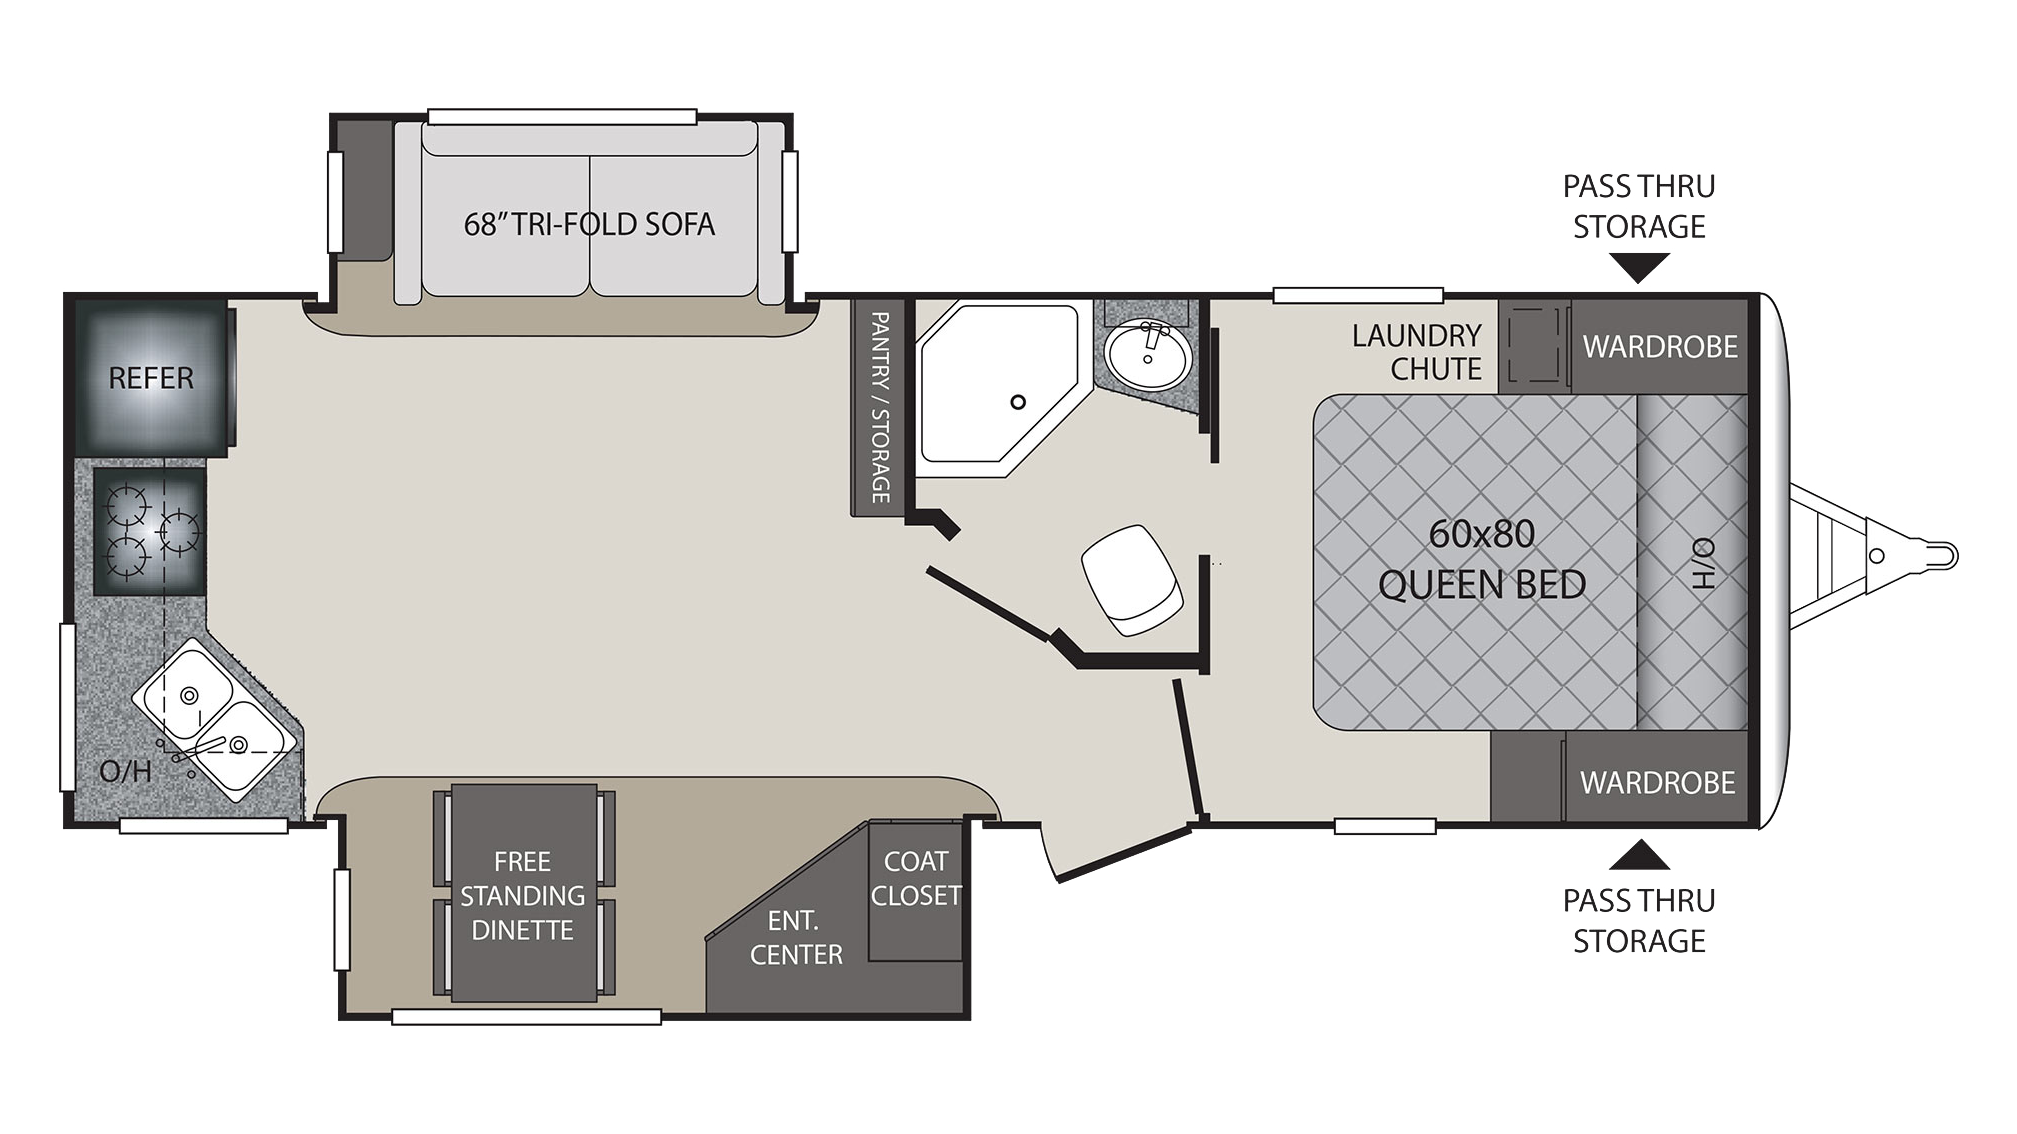 House plans with rv storage house plans with rv storage for Rv storage building plans free